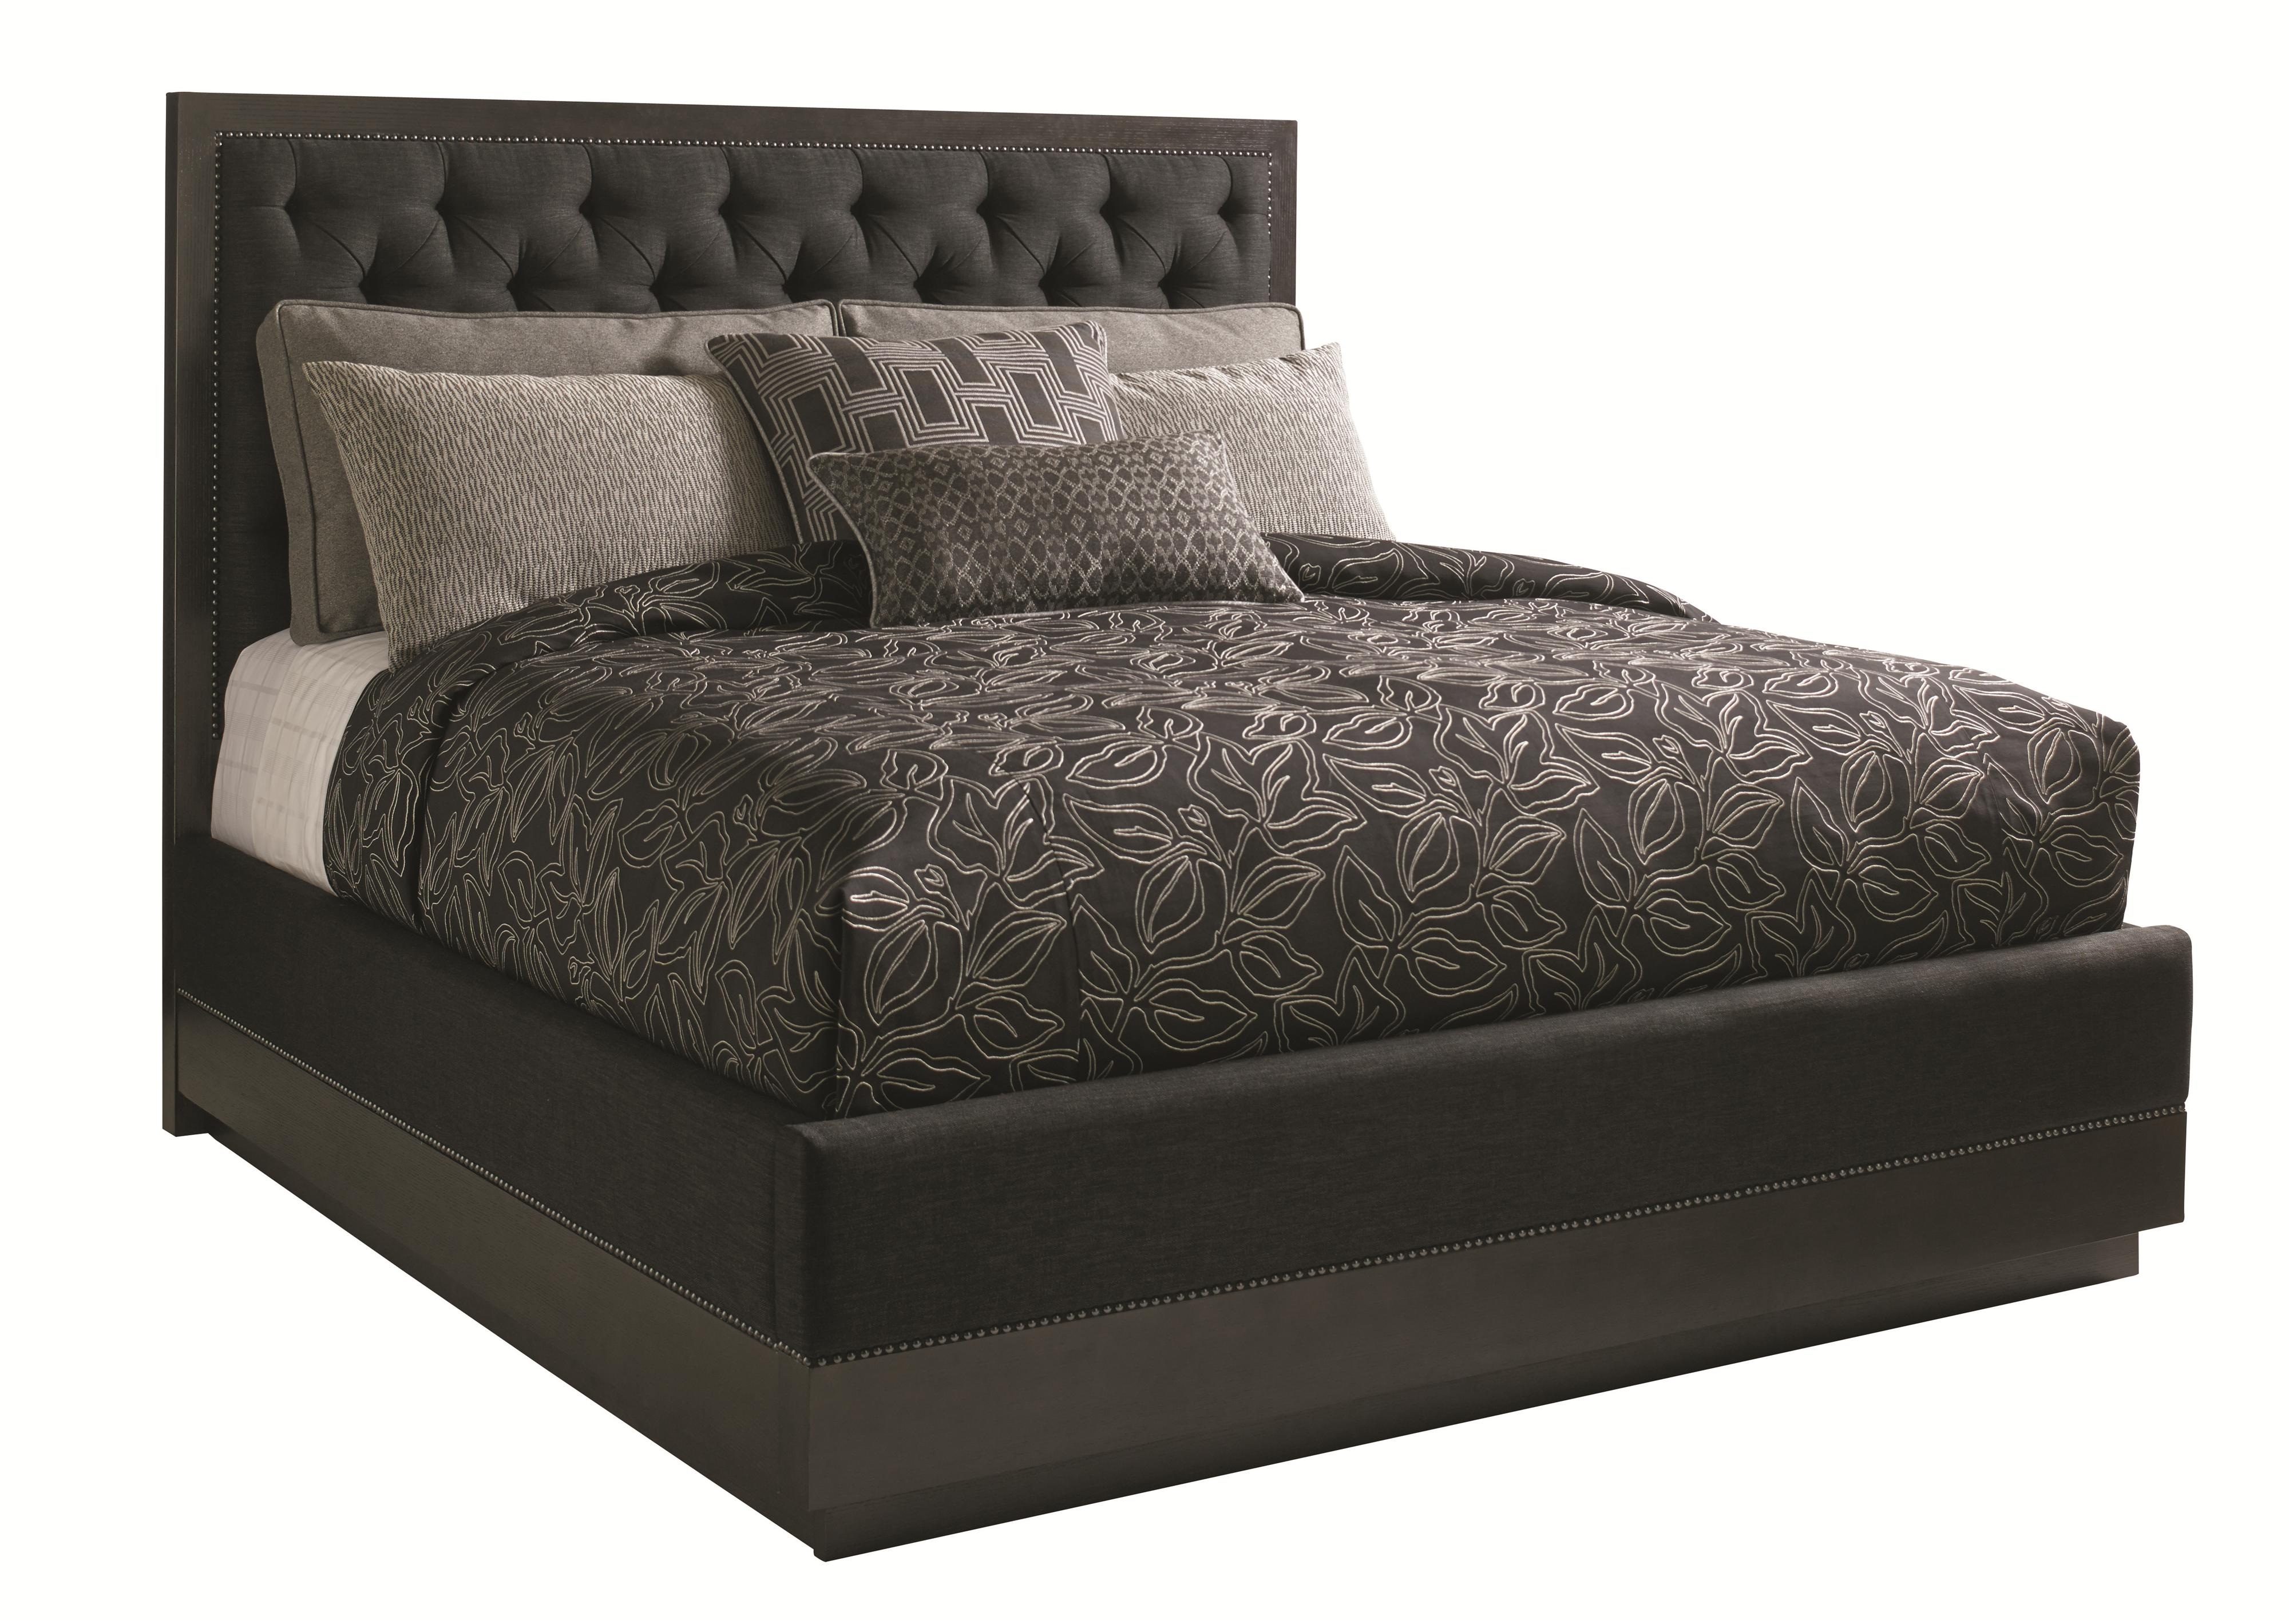 Complete 5/0 Maranello Upholstered Bed